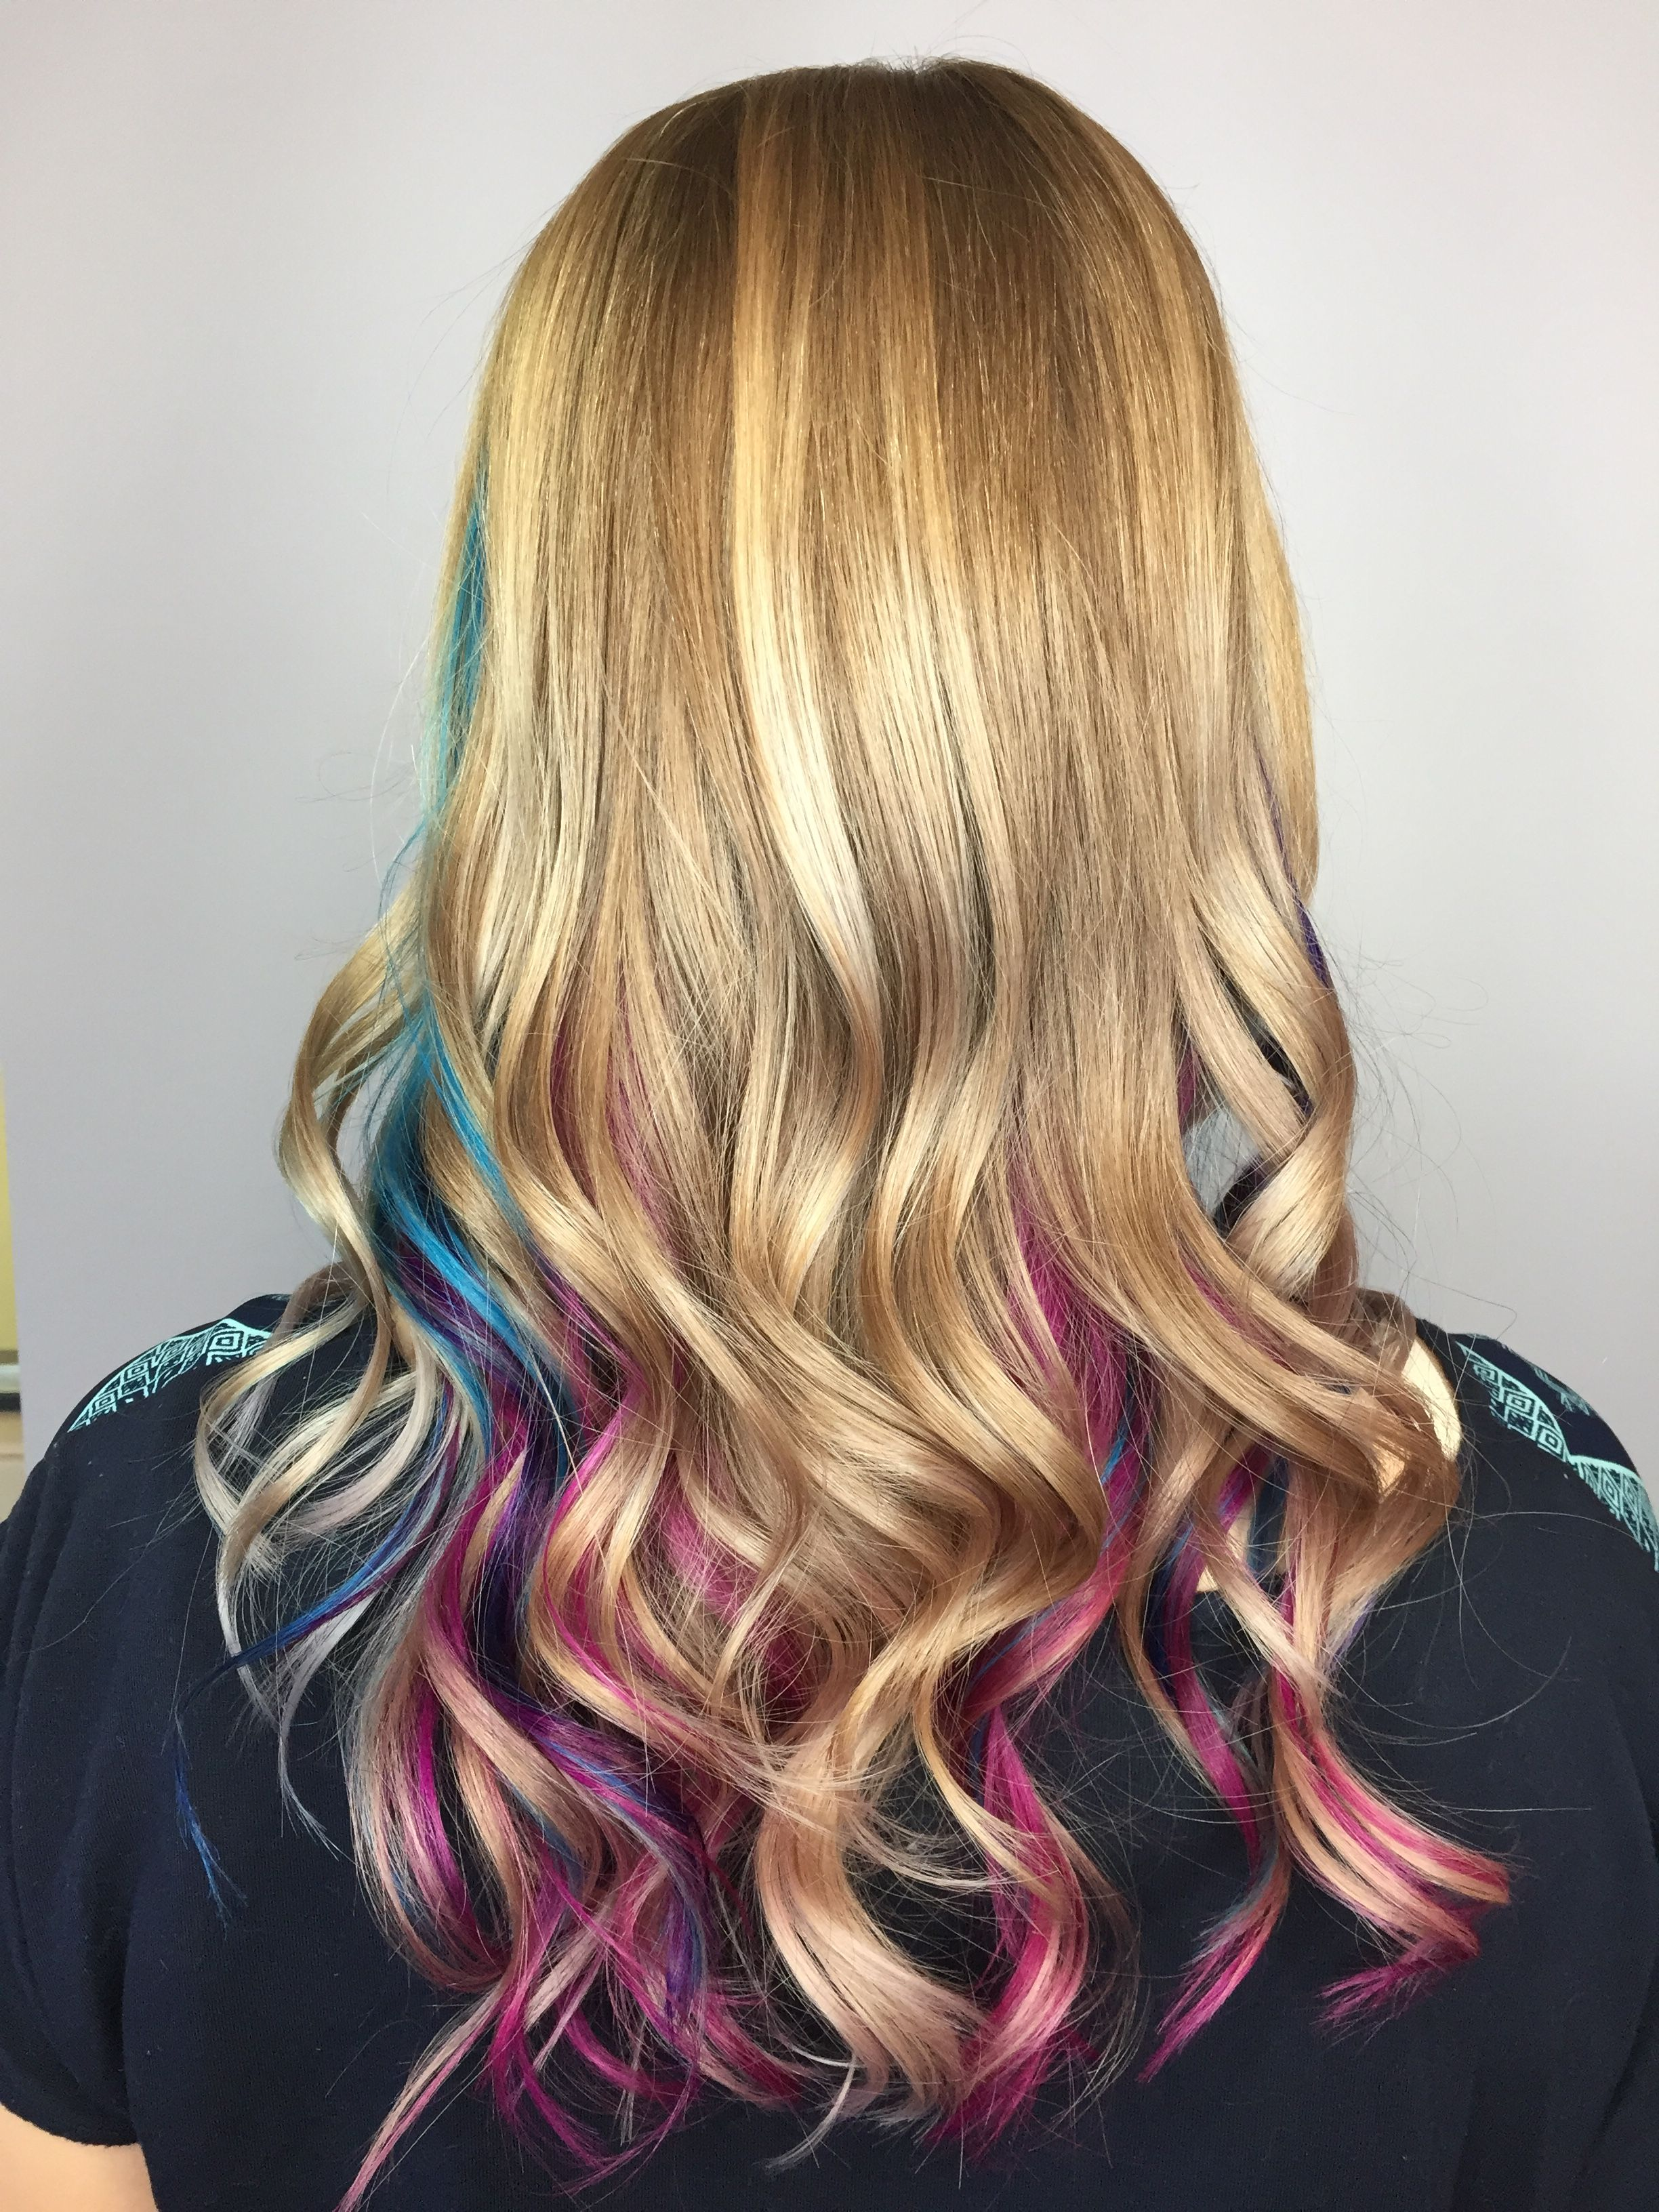 Pink Purple And Blue Teal Peekaboo Highlights Under